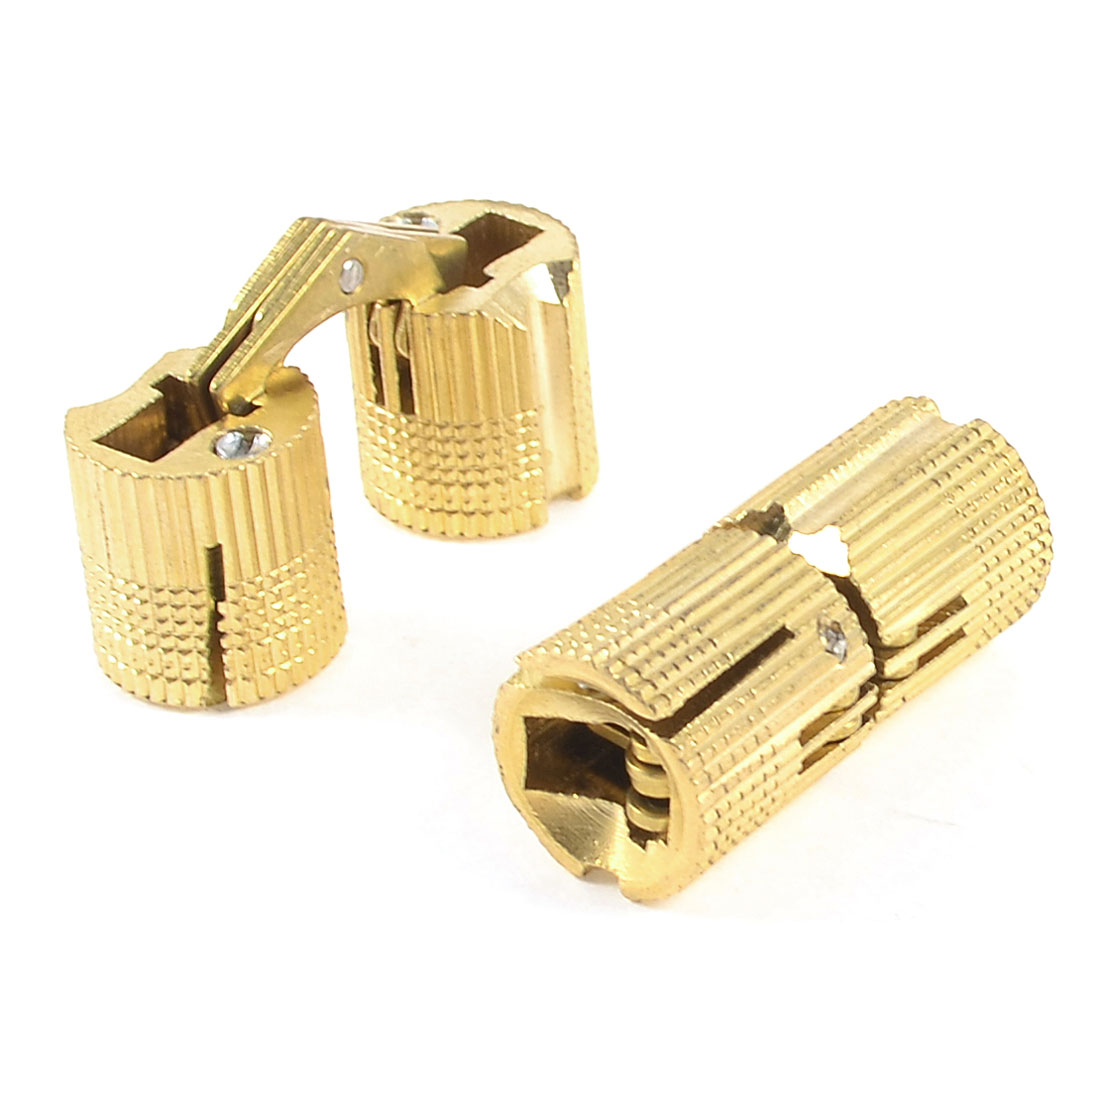 Furniture Gold Tone Metal 30mm Hight Door Window Cabinet Hinge 2 Pcs